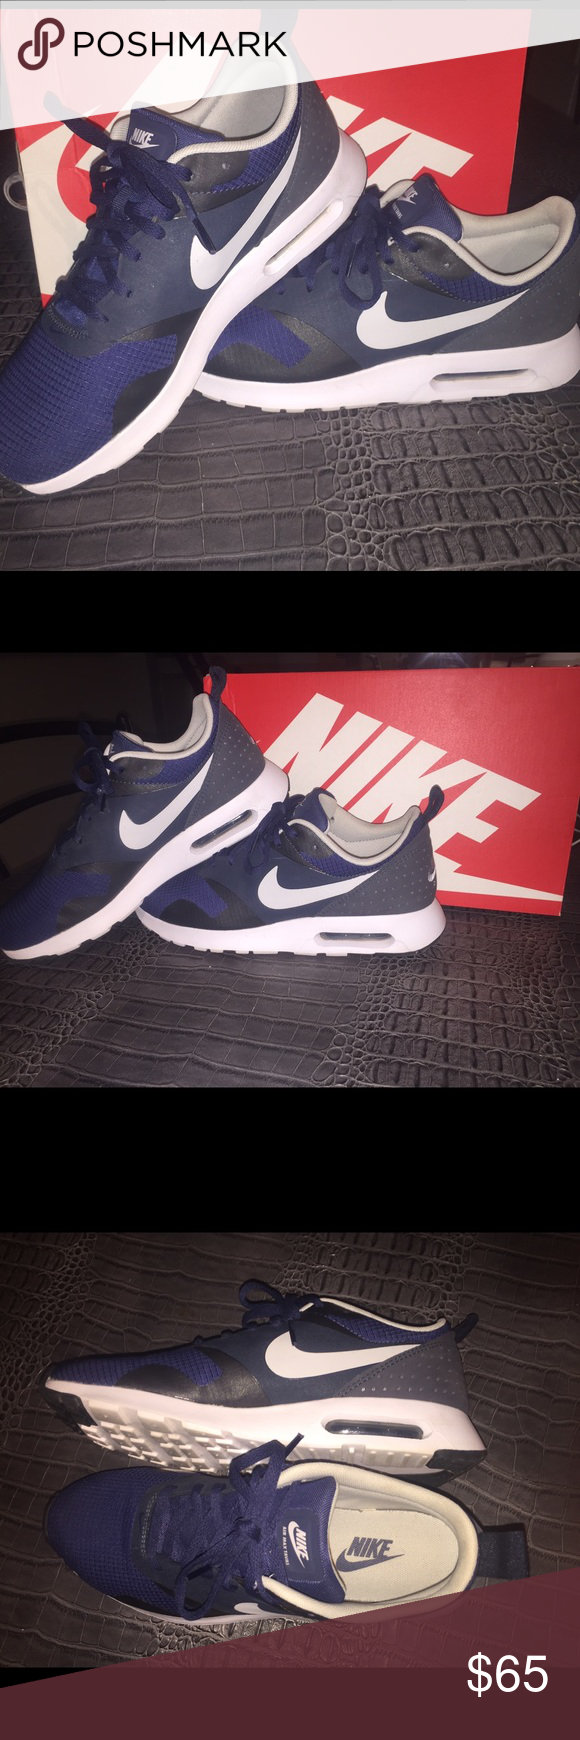 Nike Air Max Tavas Worn only once, great condition! The size is 7.5 in mens, 9 womens, they didn't fit me, so im selling em! Nike Shoes Athletic Shoes